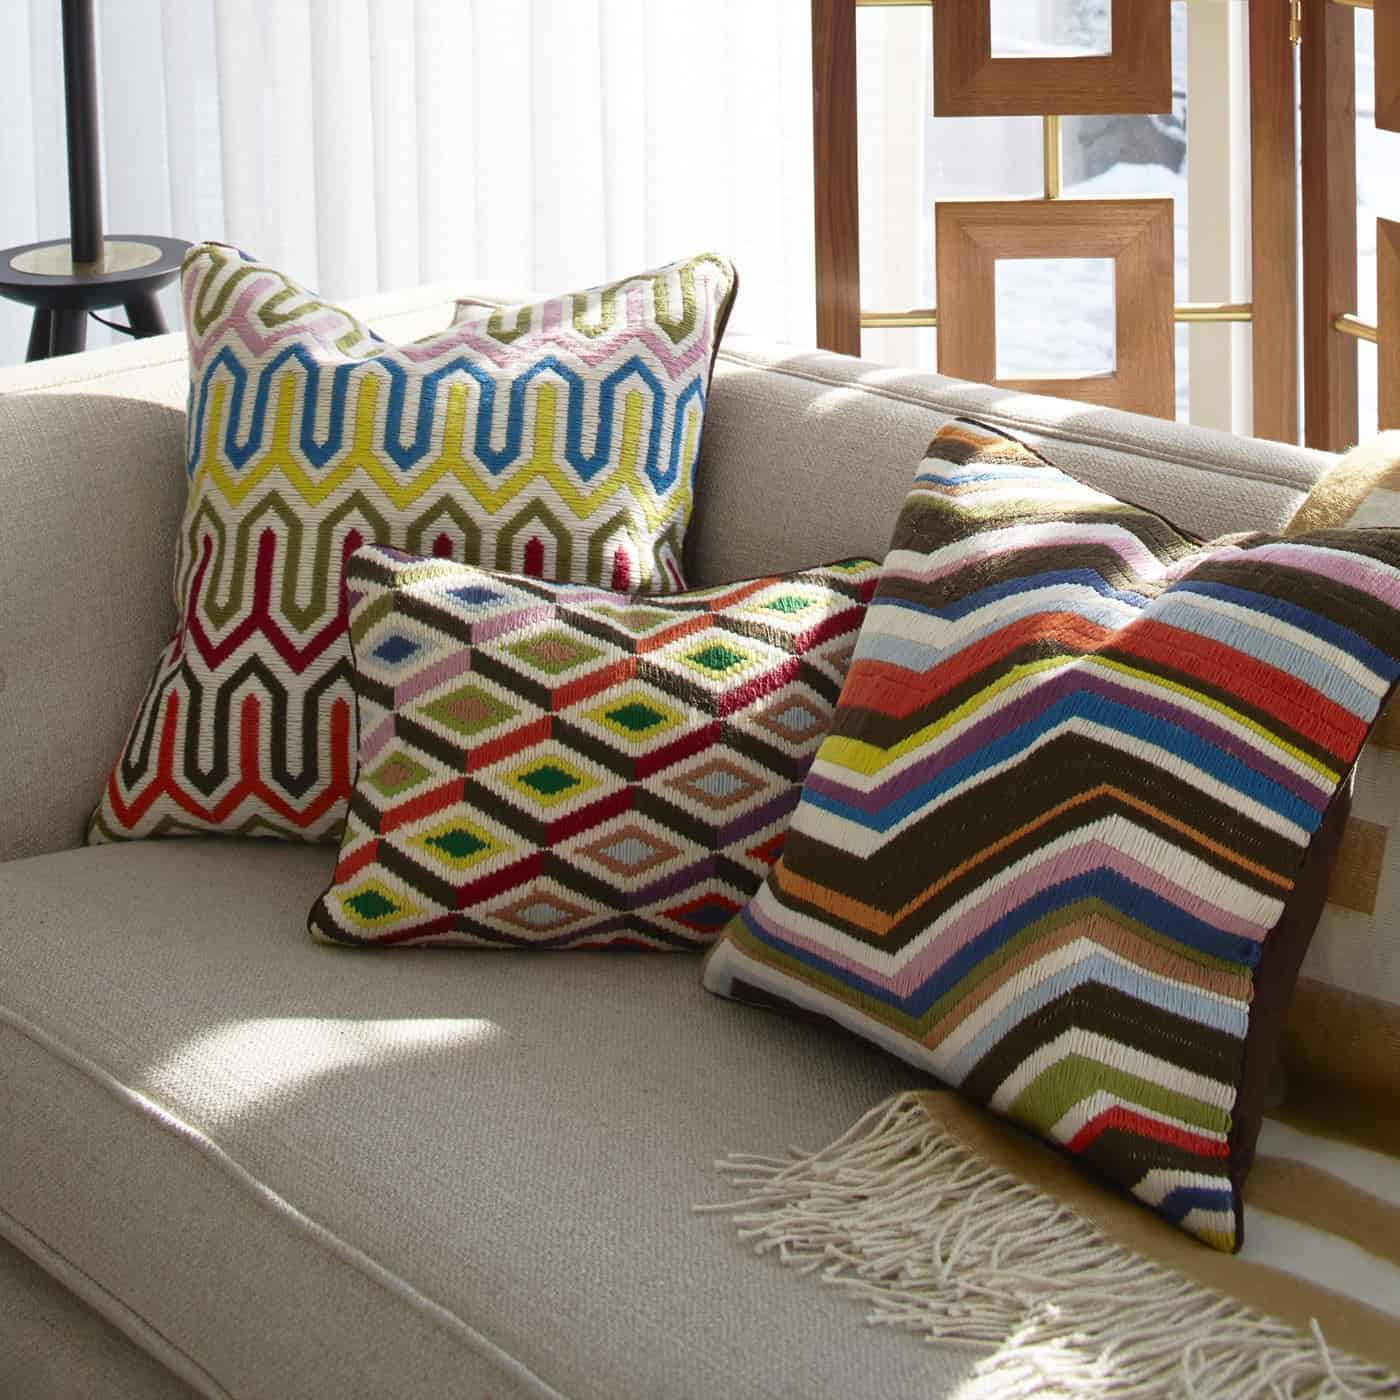 Trundle bed couch throw pillows